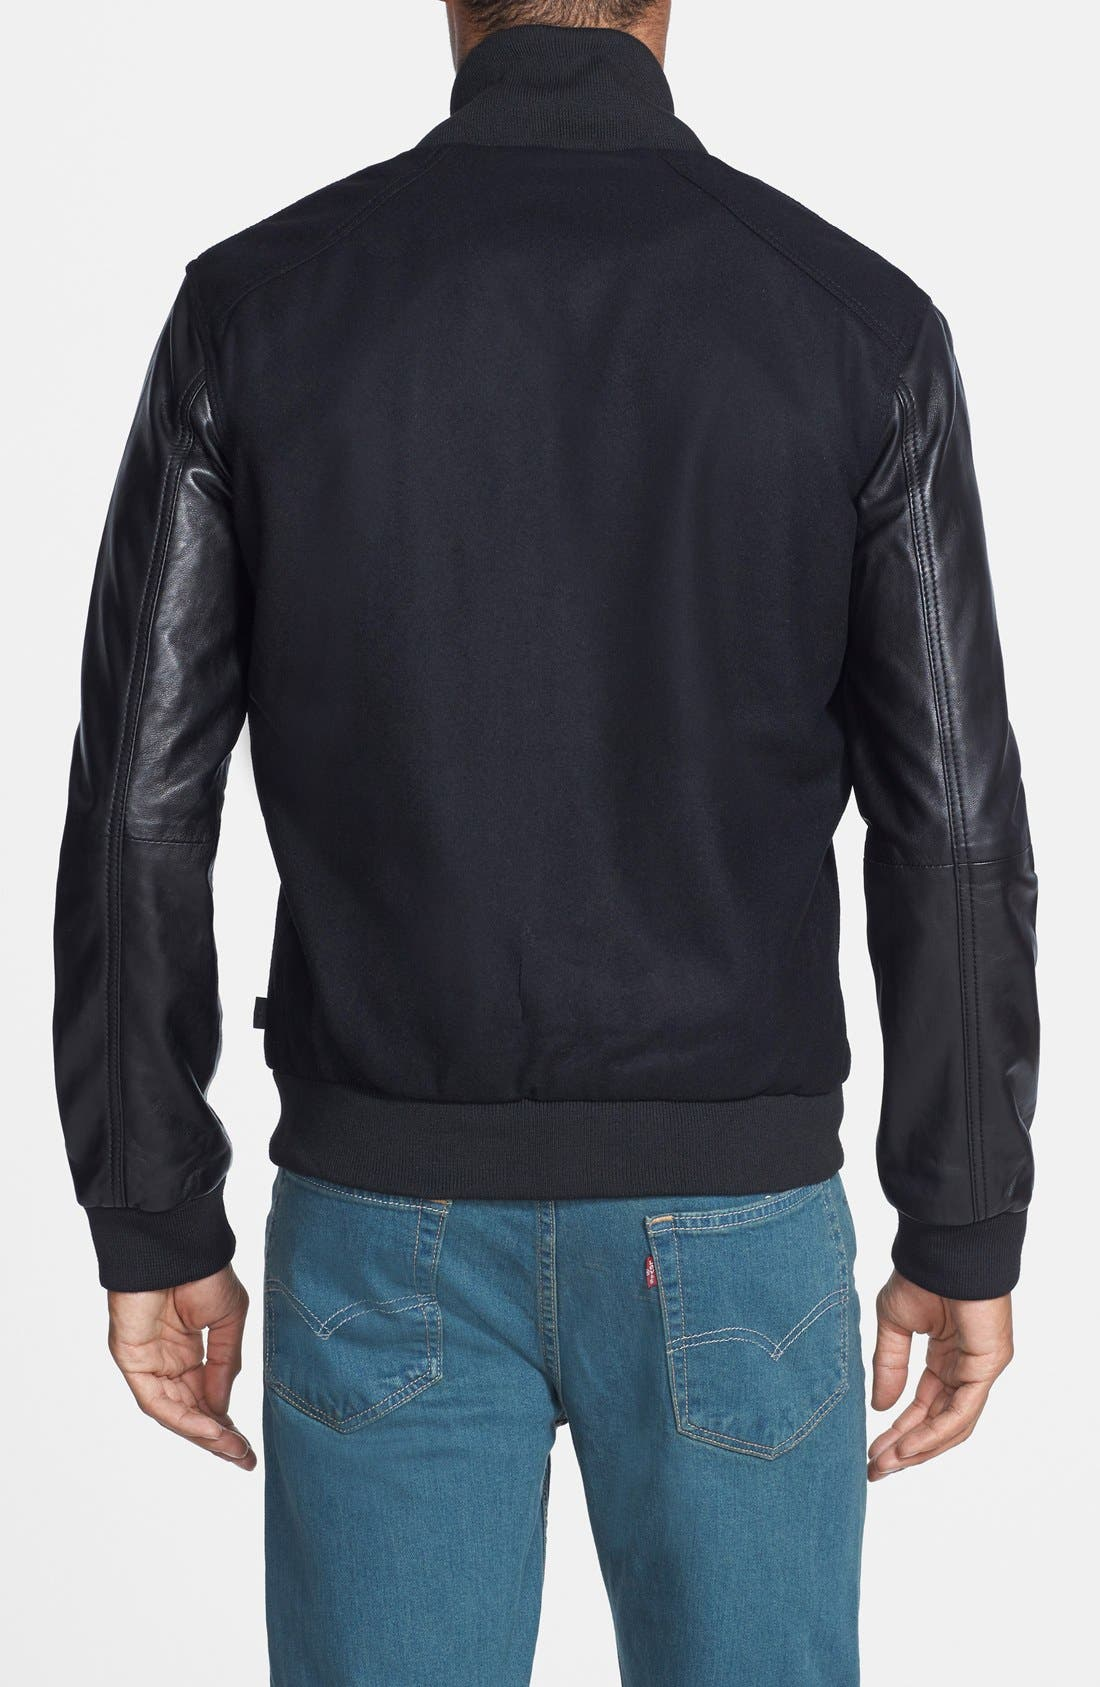 Wool Blend Varsity Jacket with Leather Sleeves,                             Alternate thumbnail 3, color,                             001